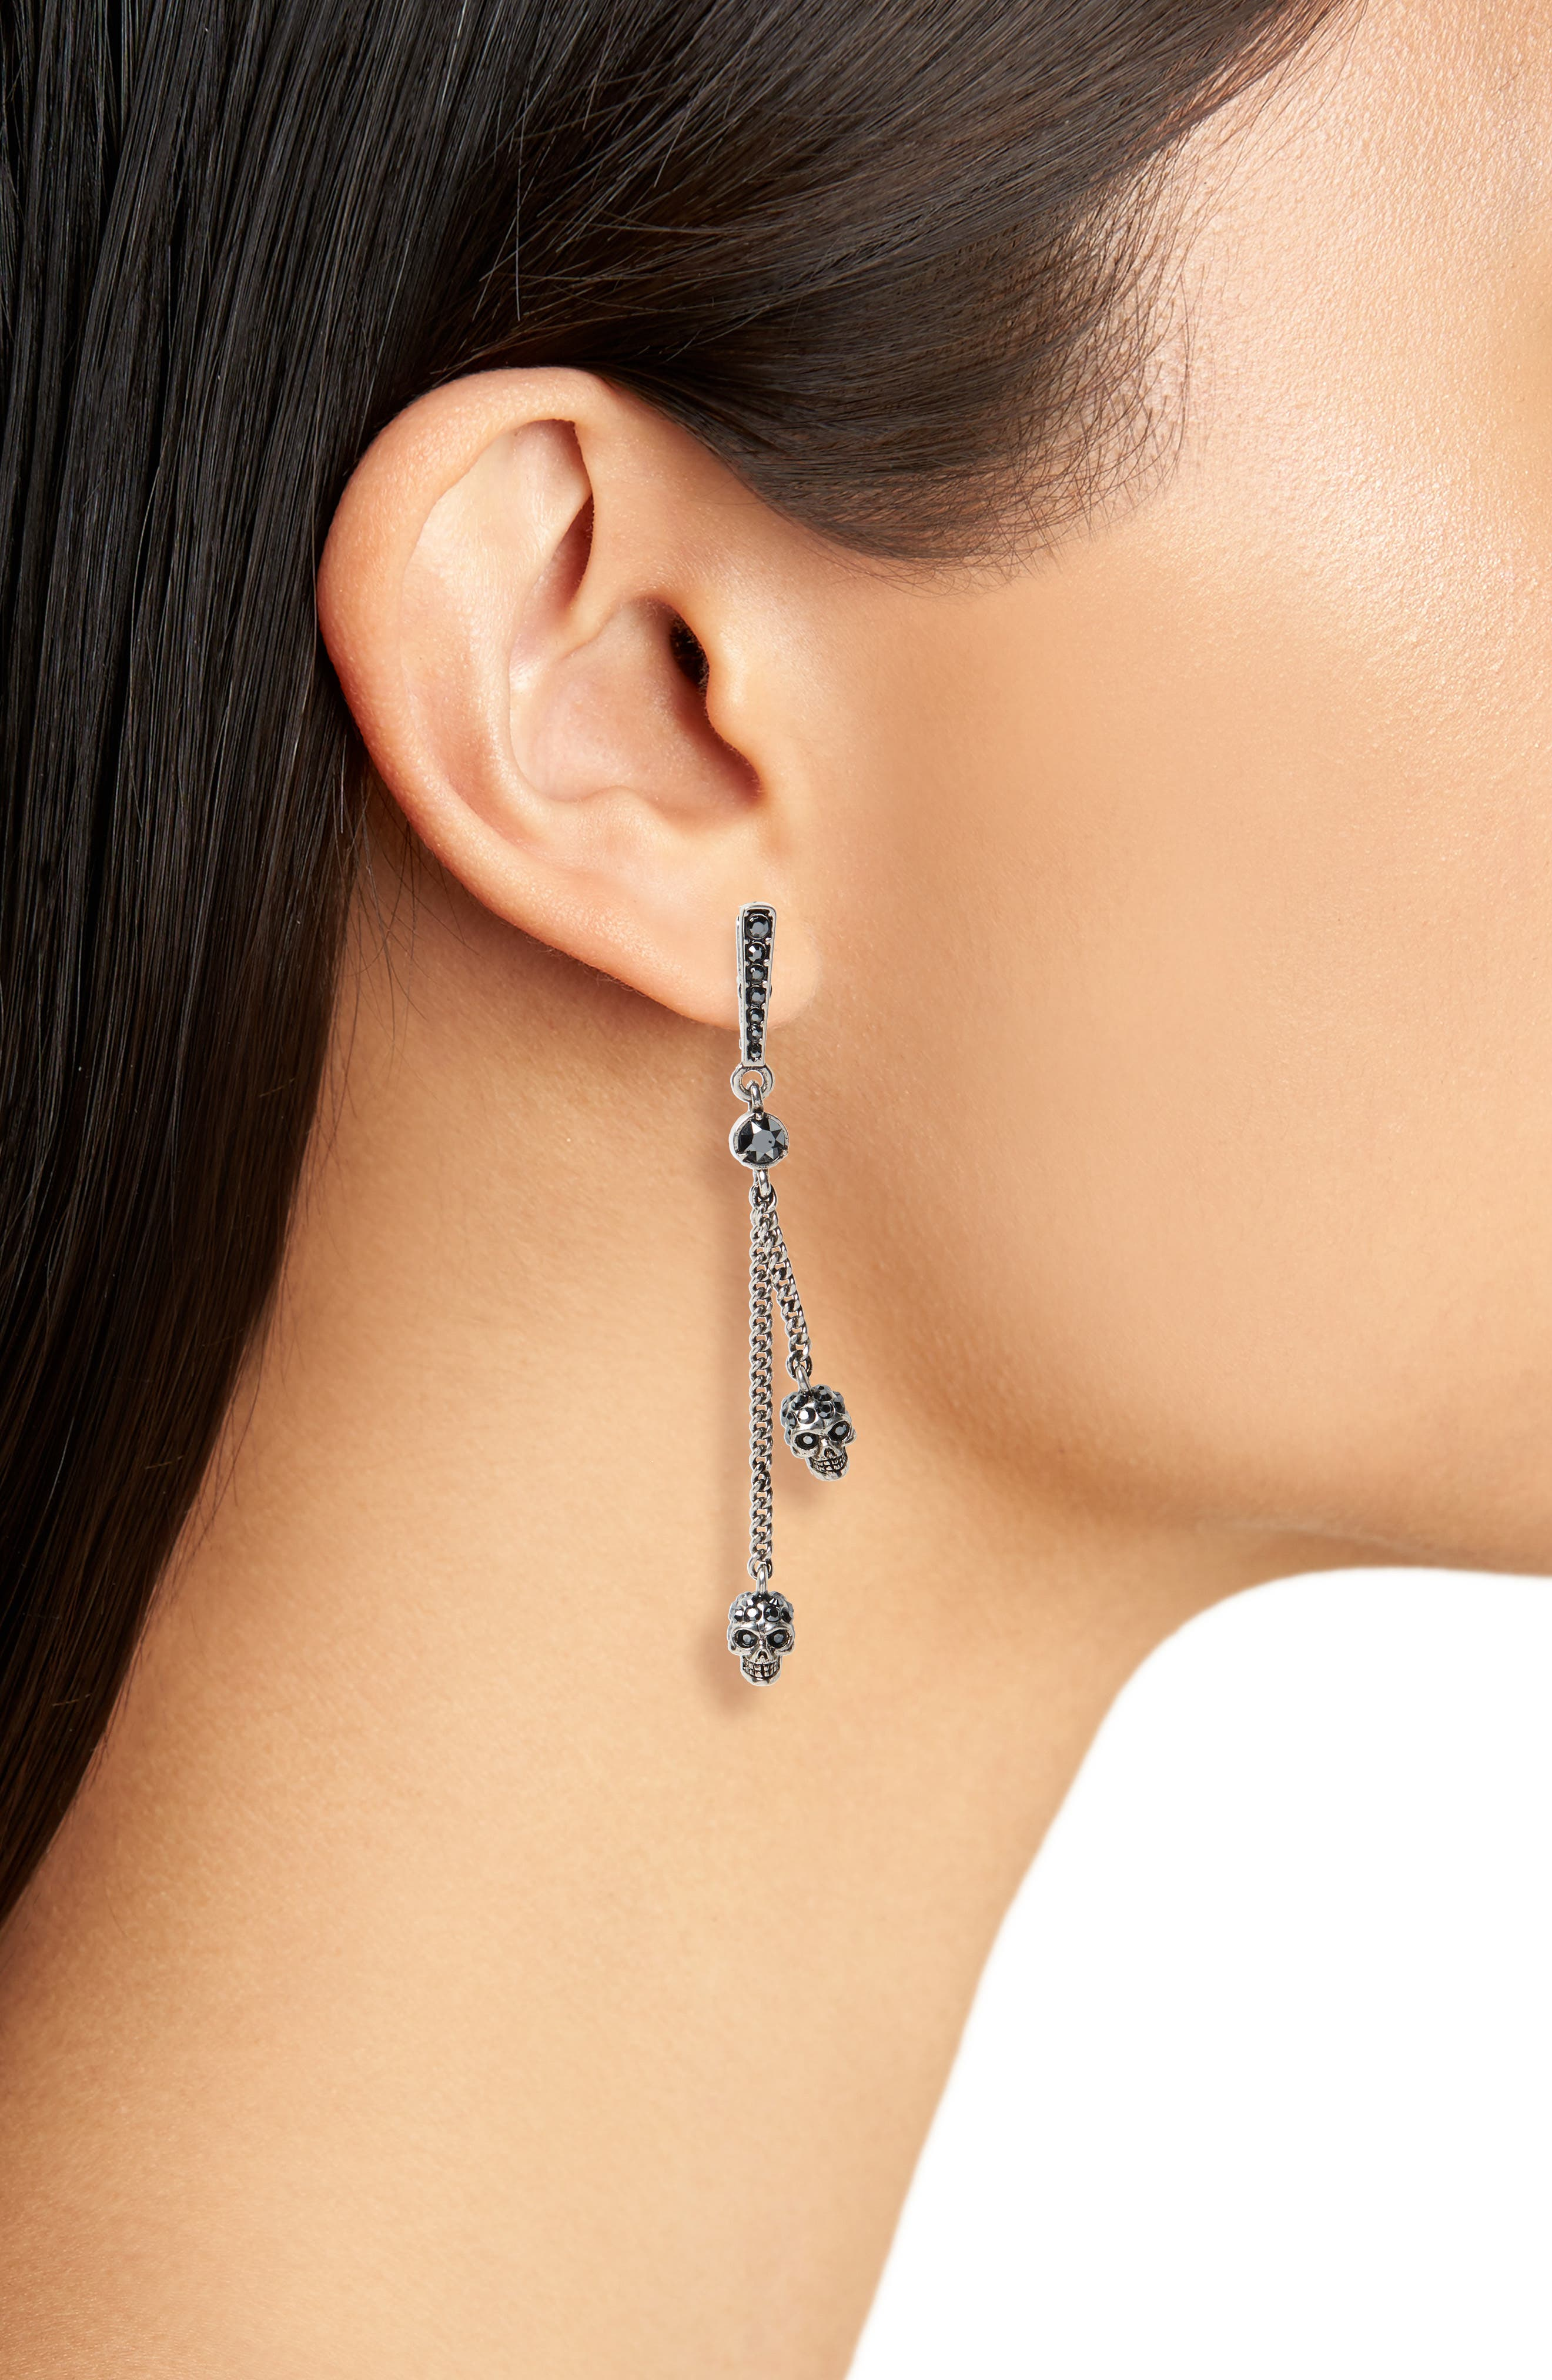 ALEXANDER MCQUEEN,                             Thin Chain Earrings,                             Alternate thumbnail 2, color,                             HEMATITE